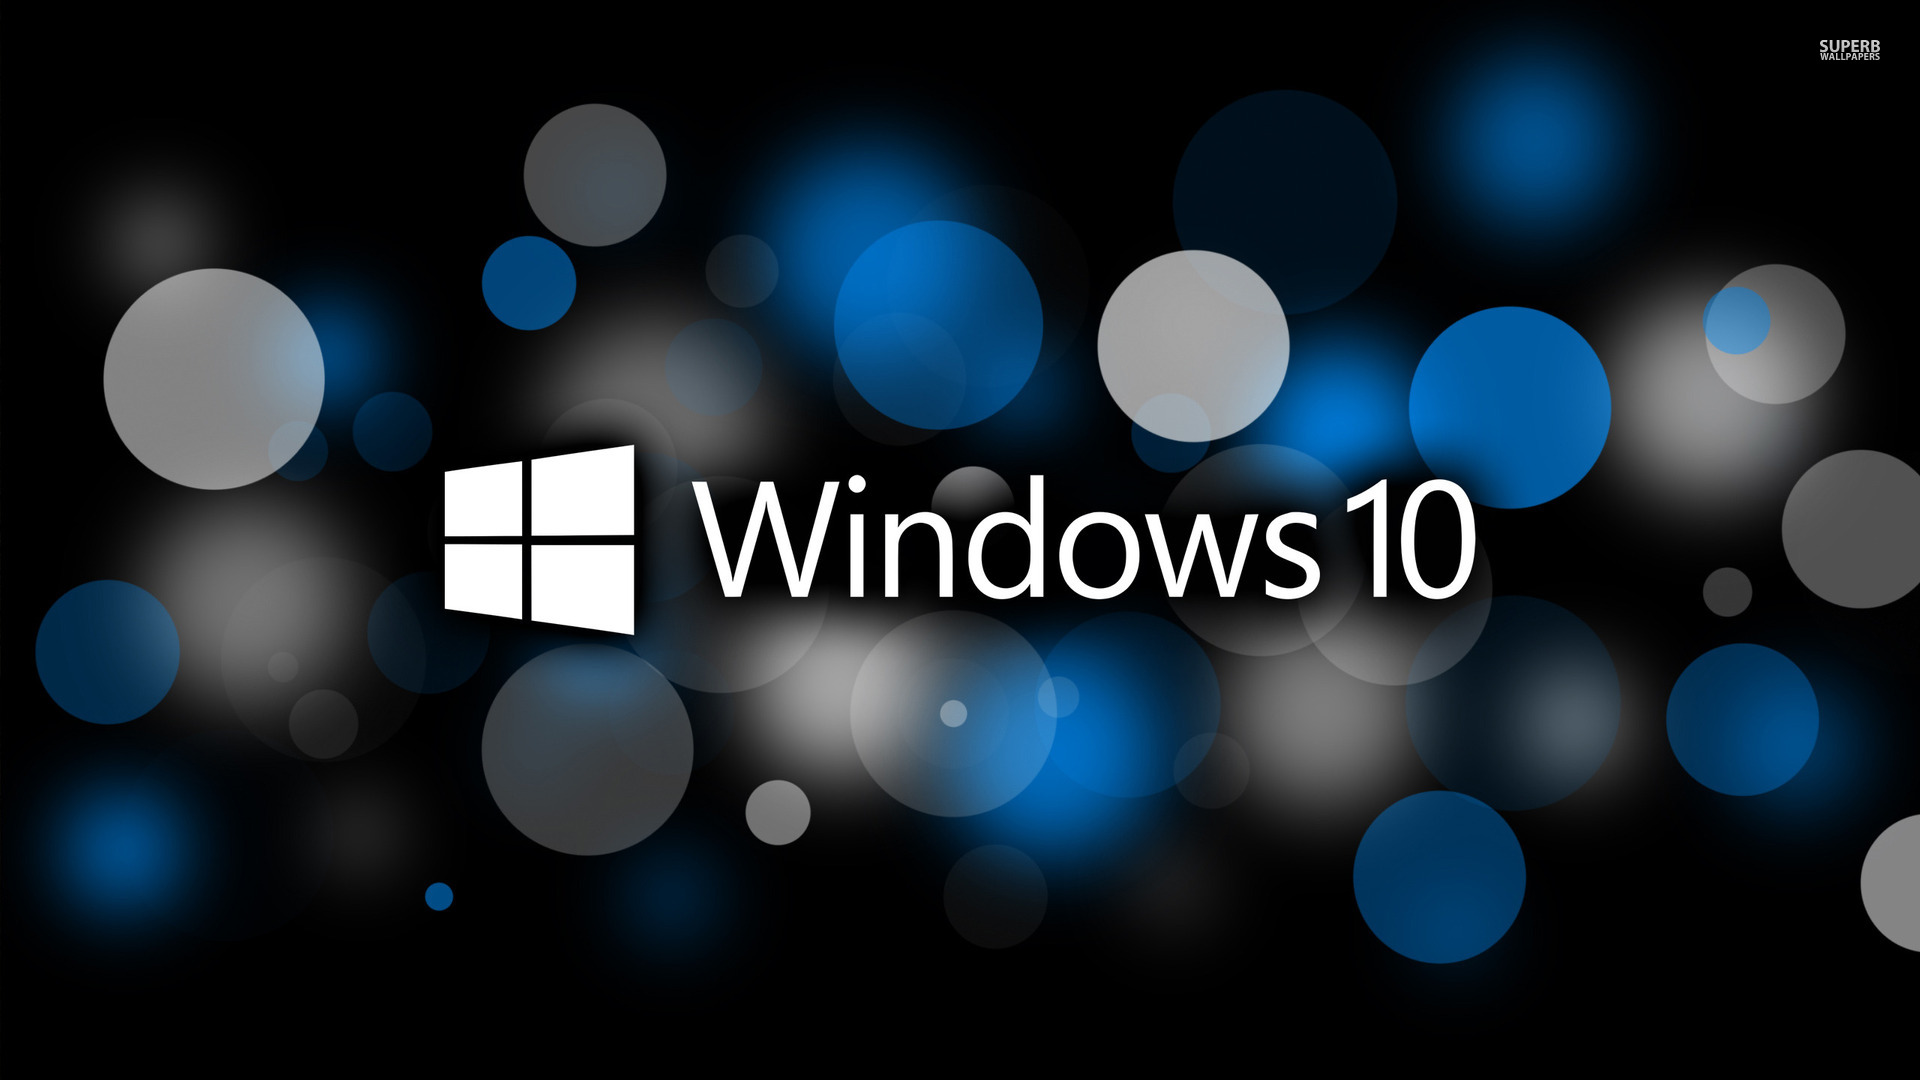 400 stunning windows 10 wallpapers hd image collection 2017 - Best laptop wallpapers 2017 ...